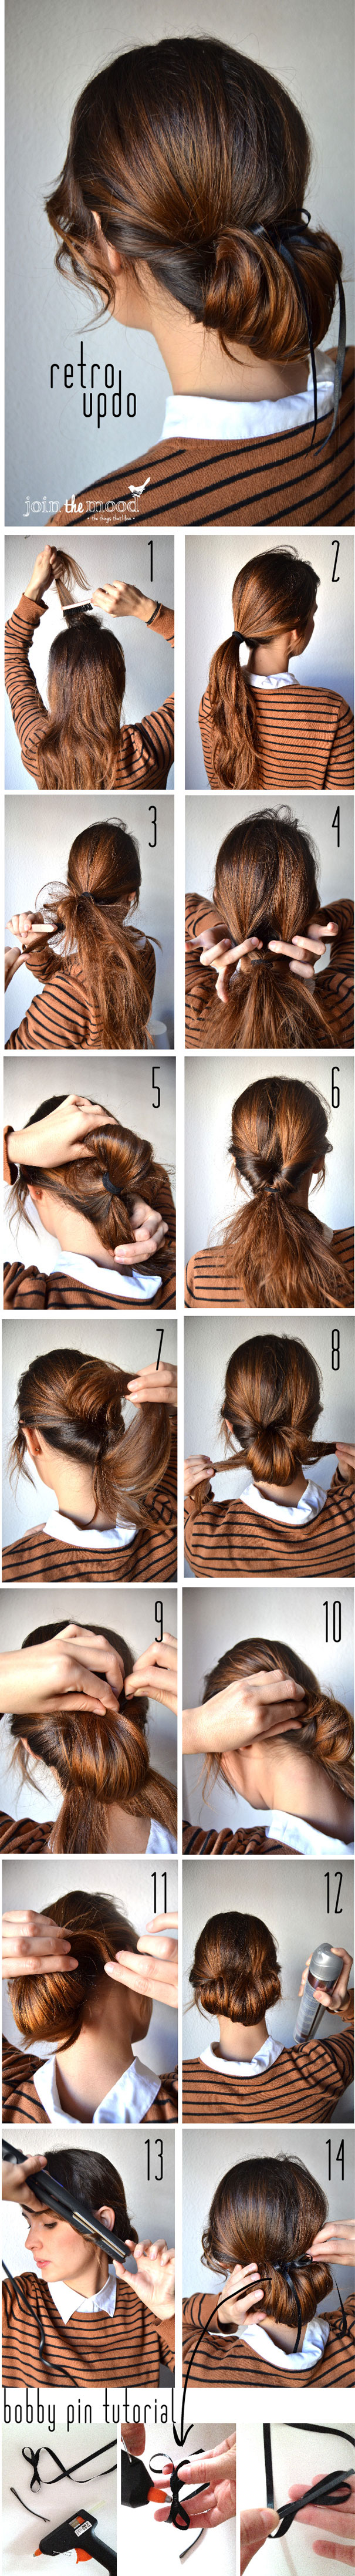 hairstyle17